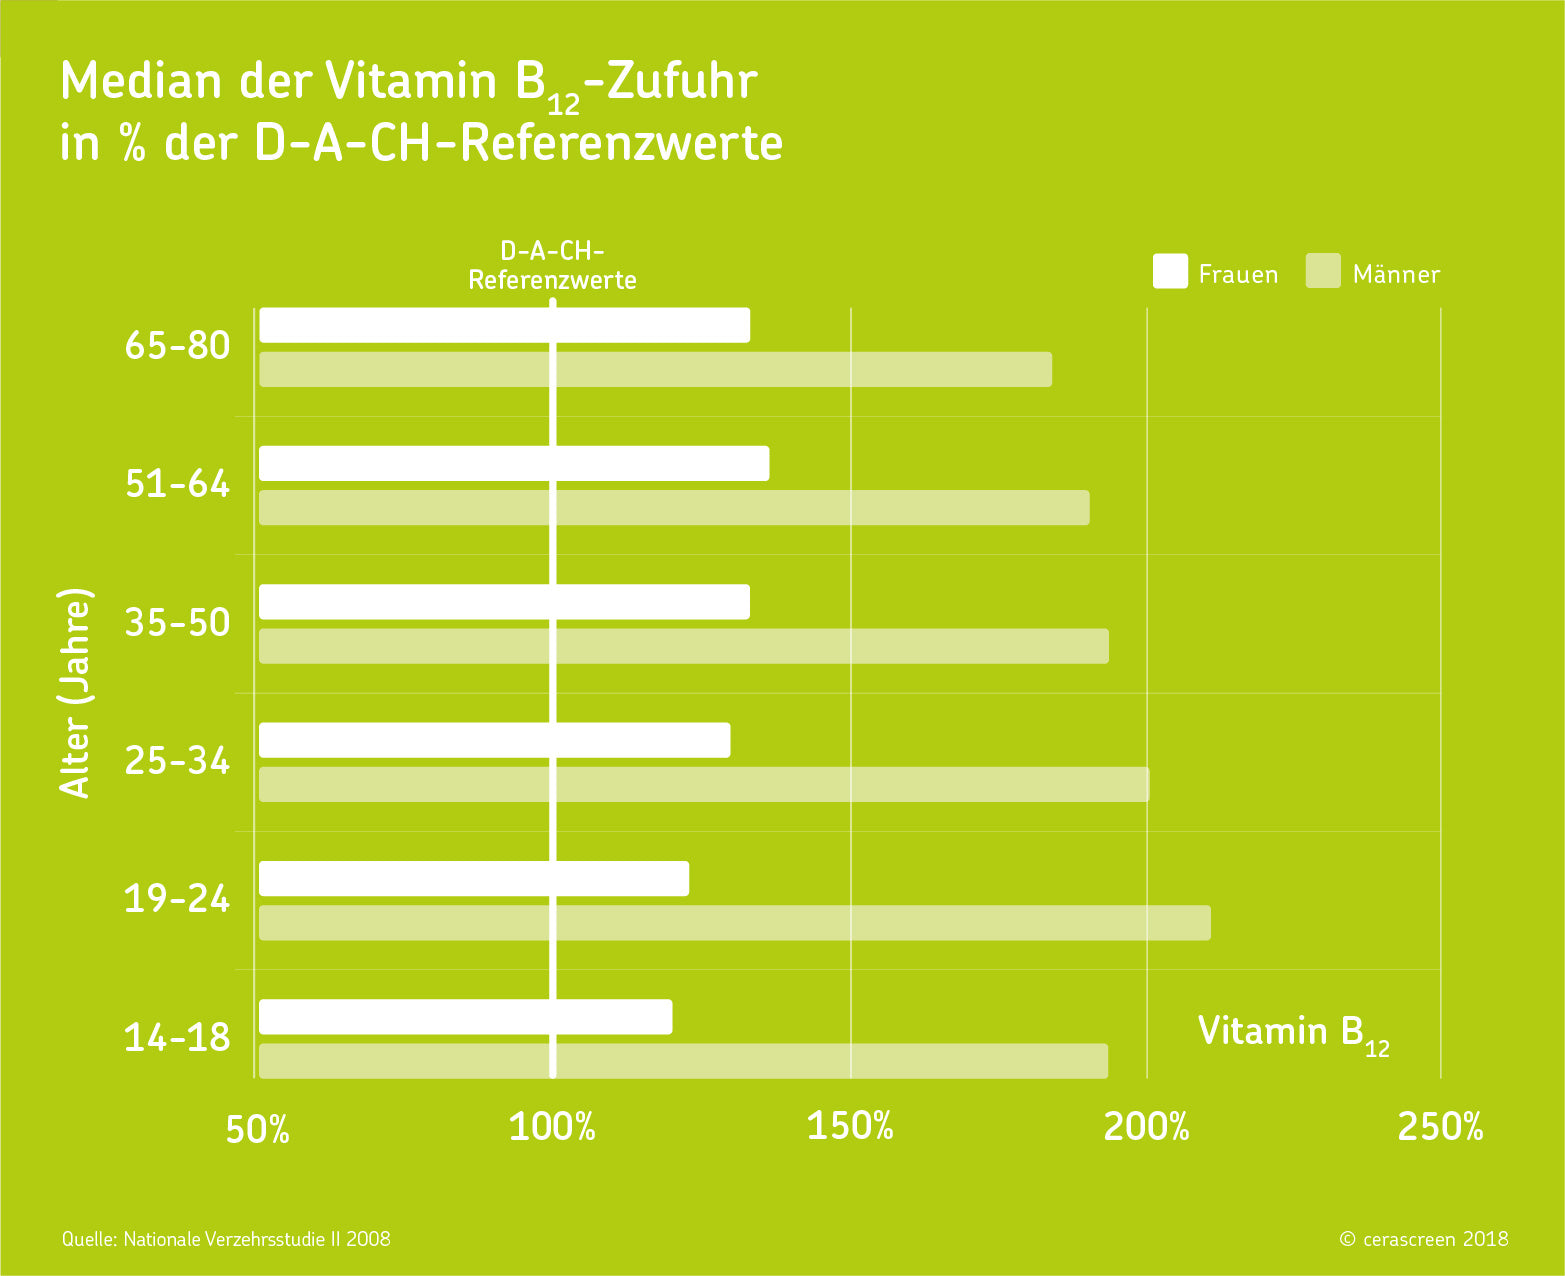 Vitamin B12 Median Zufuhr